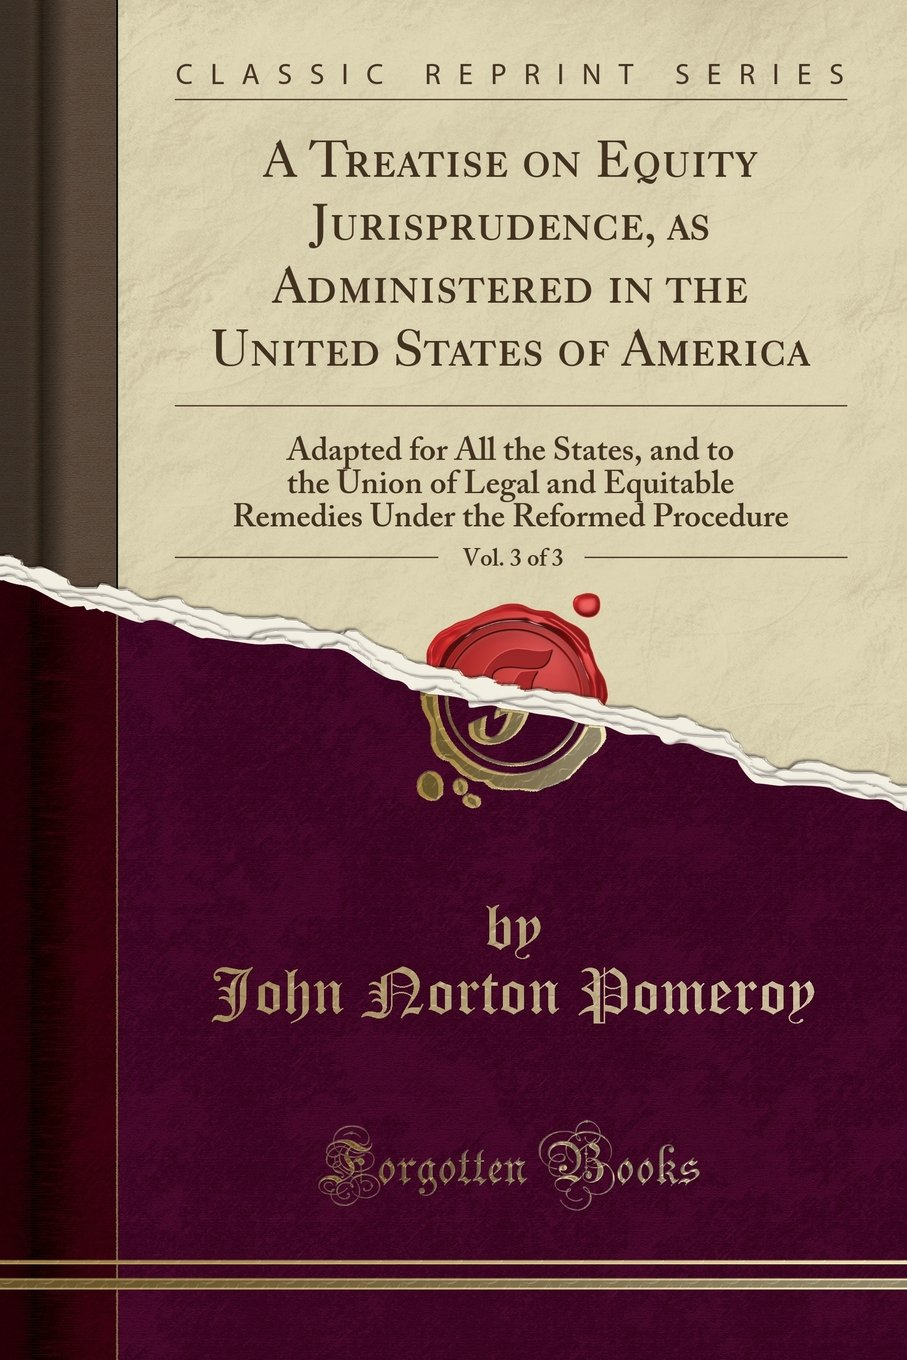 Download A Treatise on Equity Jurisprudence, as Administered in the United States of America, Vol. 3 of 3: Adapted for All the States, and to the Union of ... the Reformed Procedure (Classic Reprint) pdf